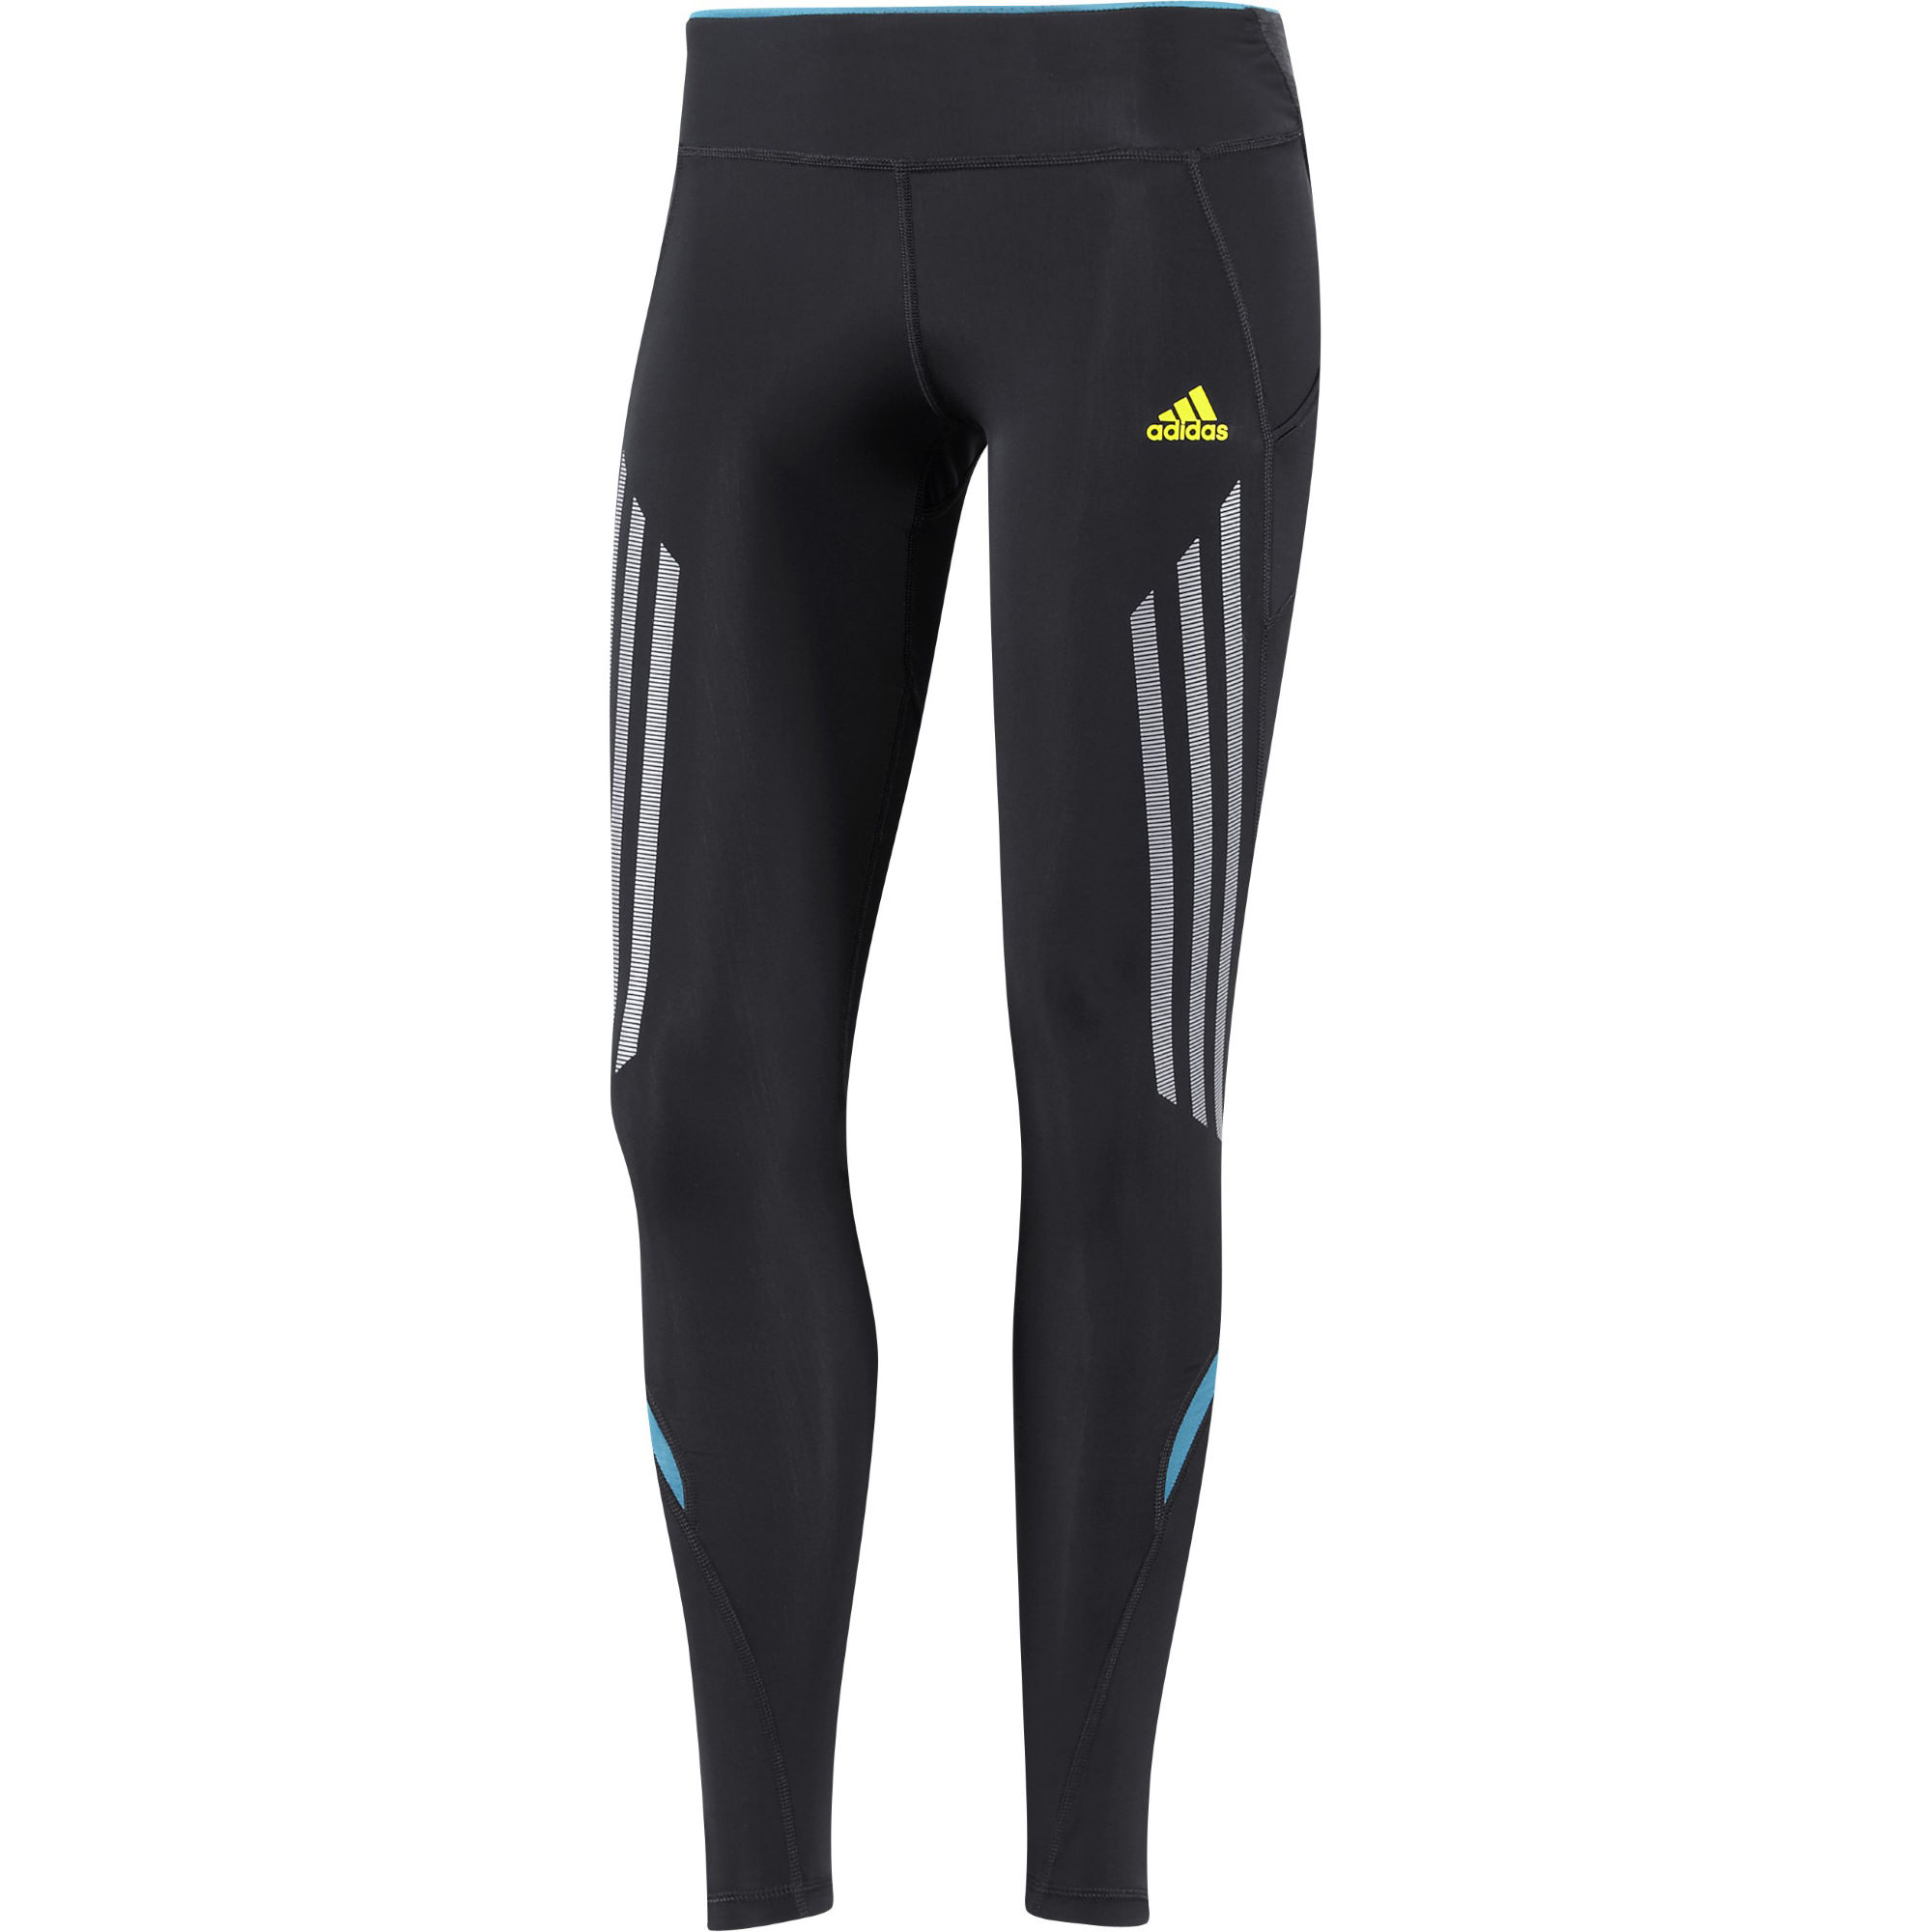 Find great deals on eBay for adidas ladies running tights. Shop with confidence.